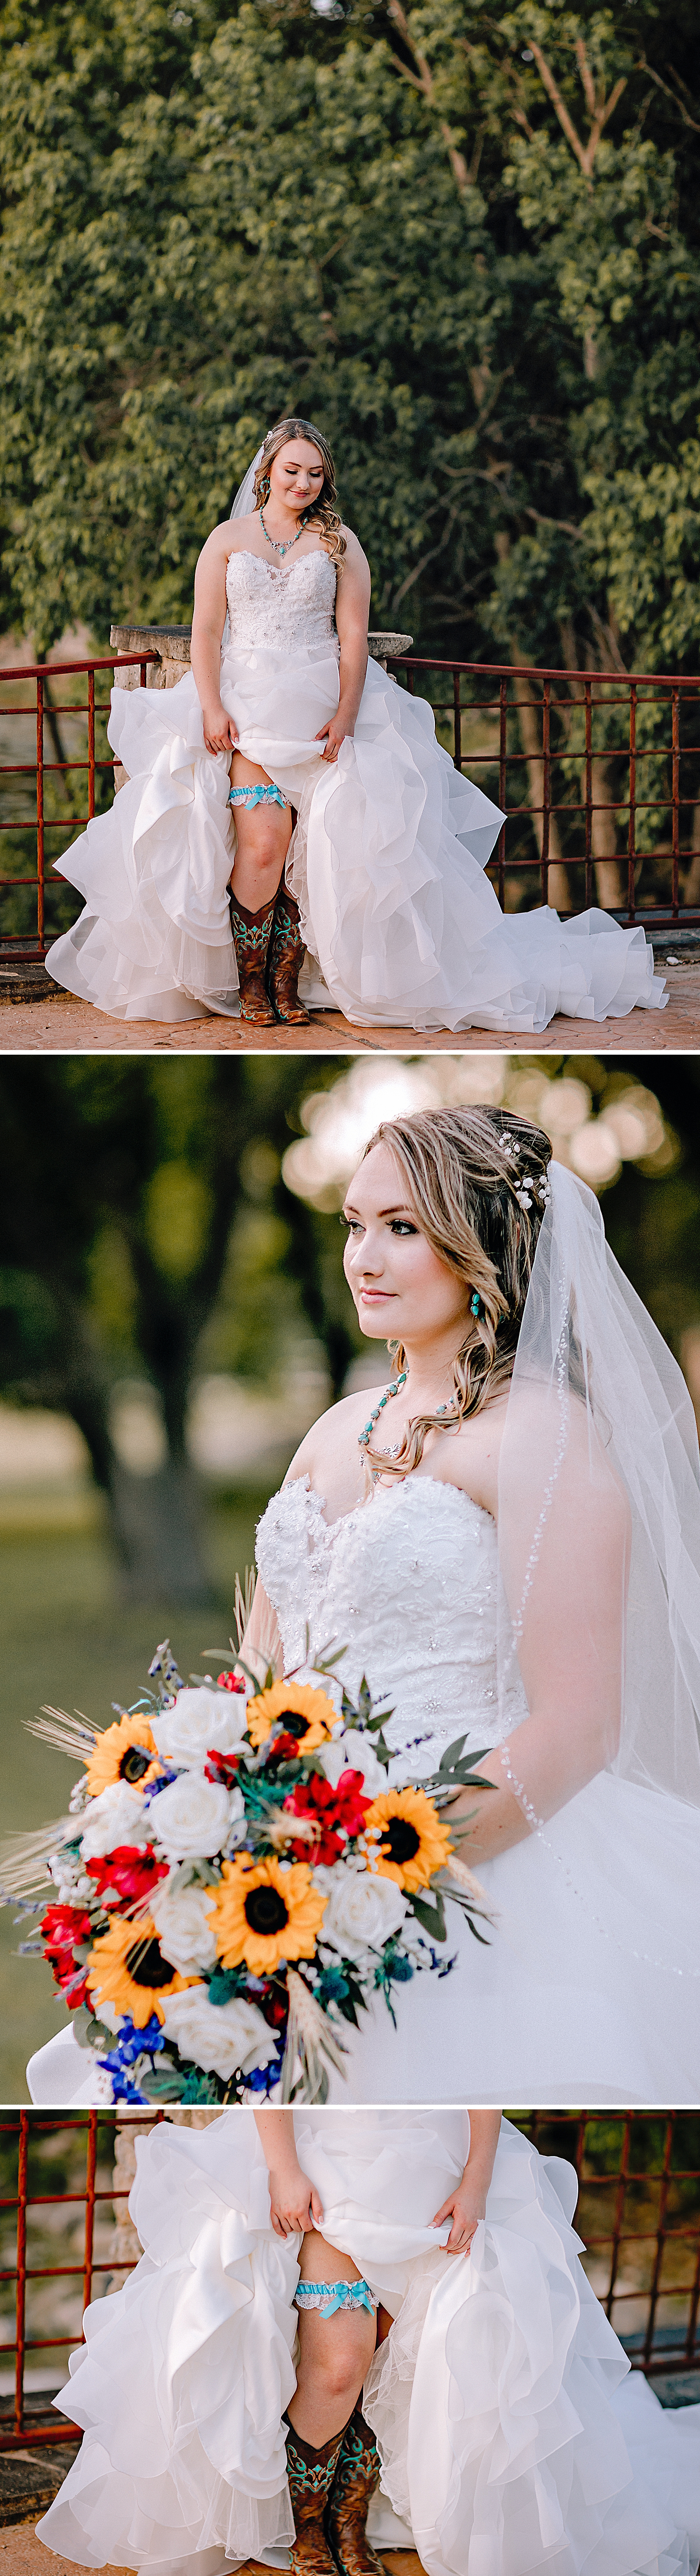 Carly-Barton-Photography-Texas-Bridals-Boerne-Rustic-Wedding-Photos_0014.jpg